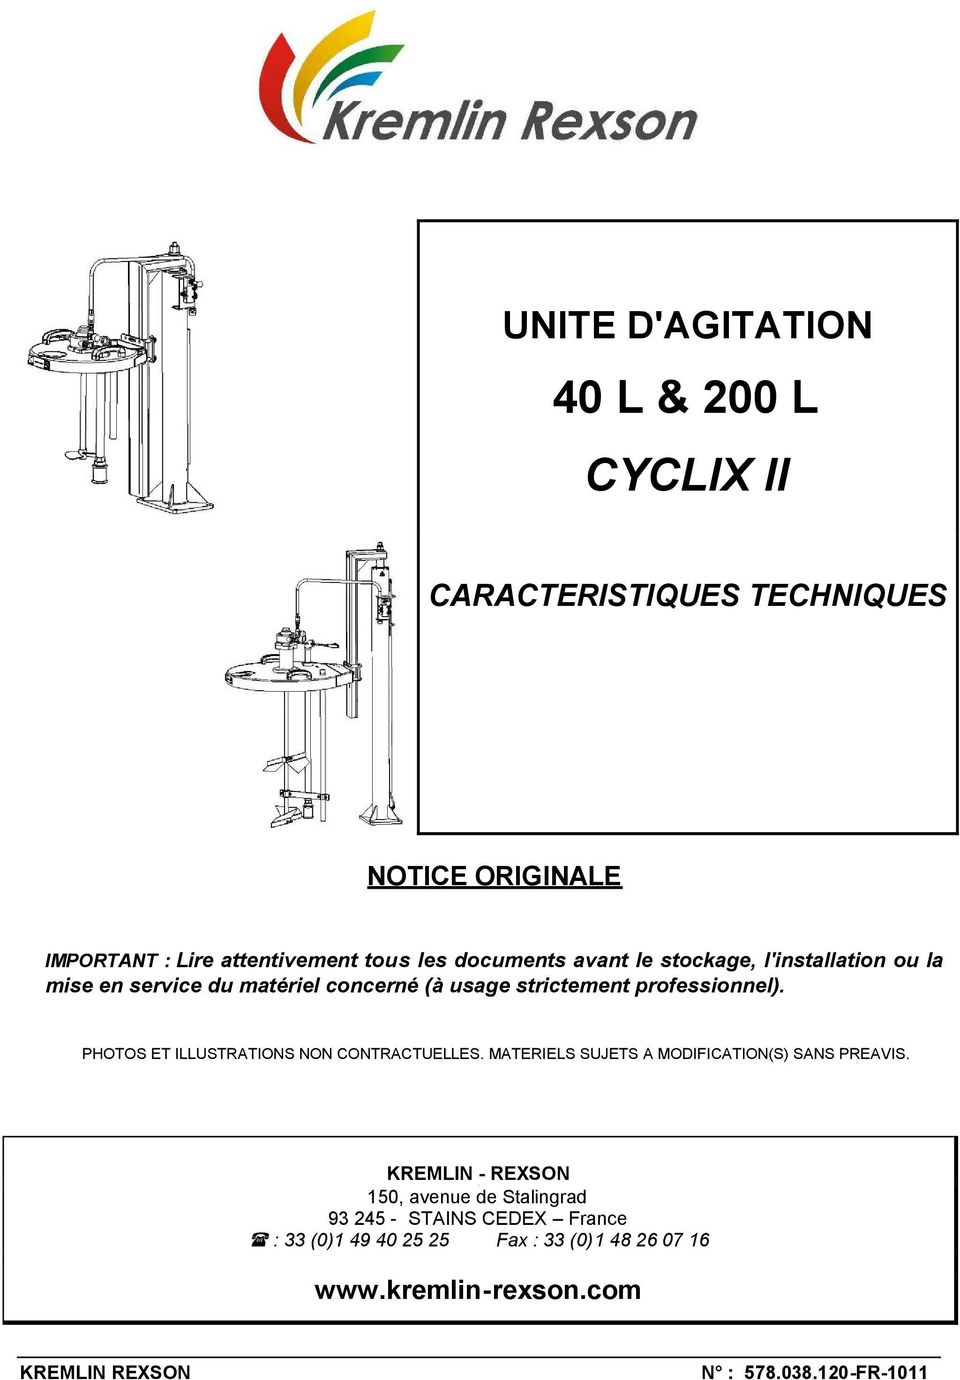 professionnel). PHOTOS ET ILLUSTRATIONS NON CONTRACTUELLES. MATERIELS SUJETS A MODIFICATION(S) SANS PREAVIS.